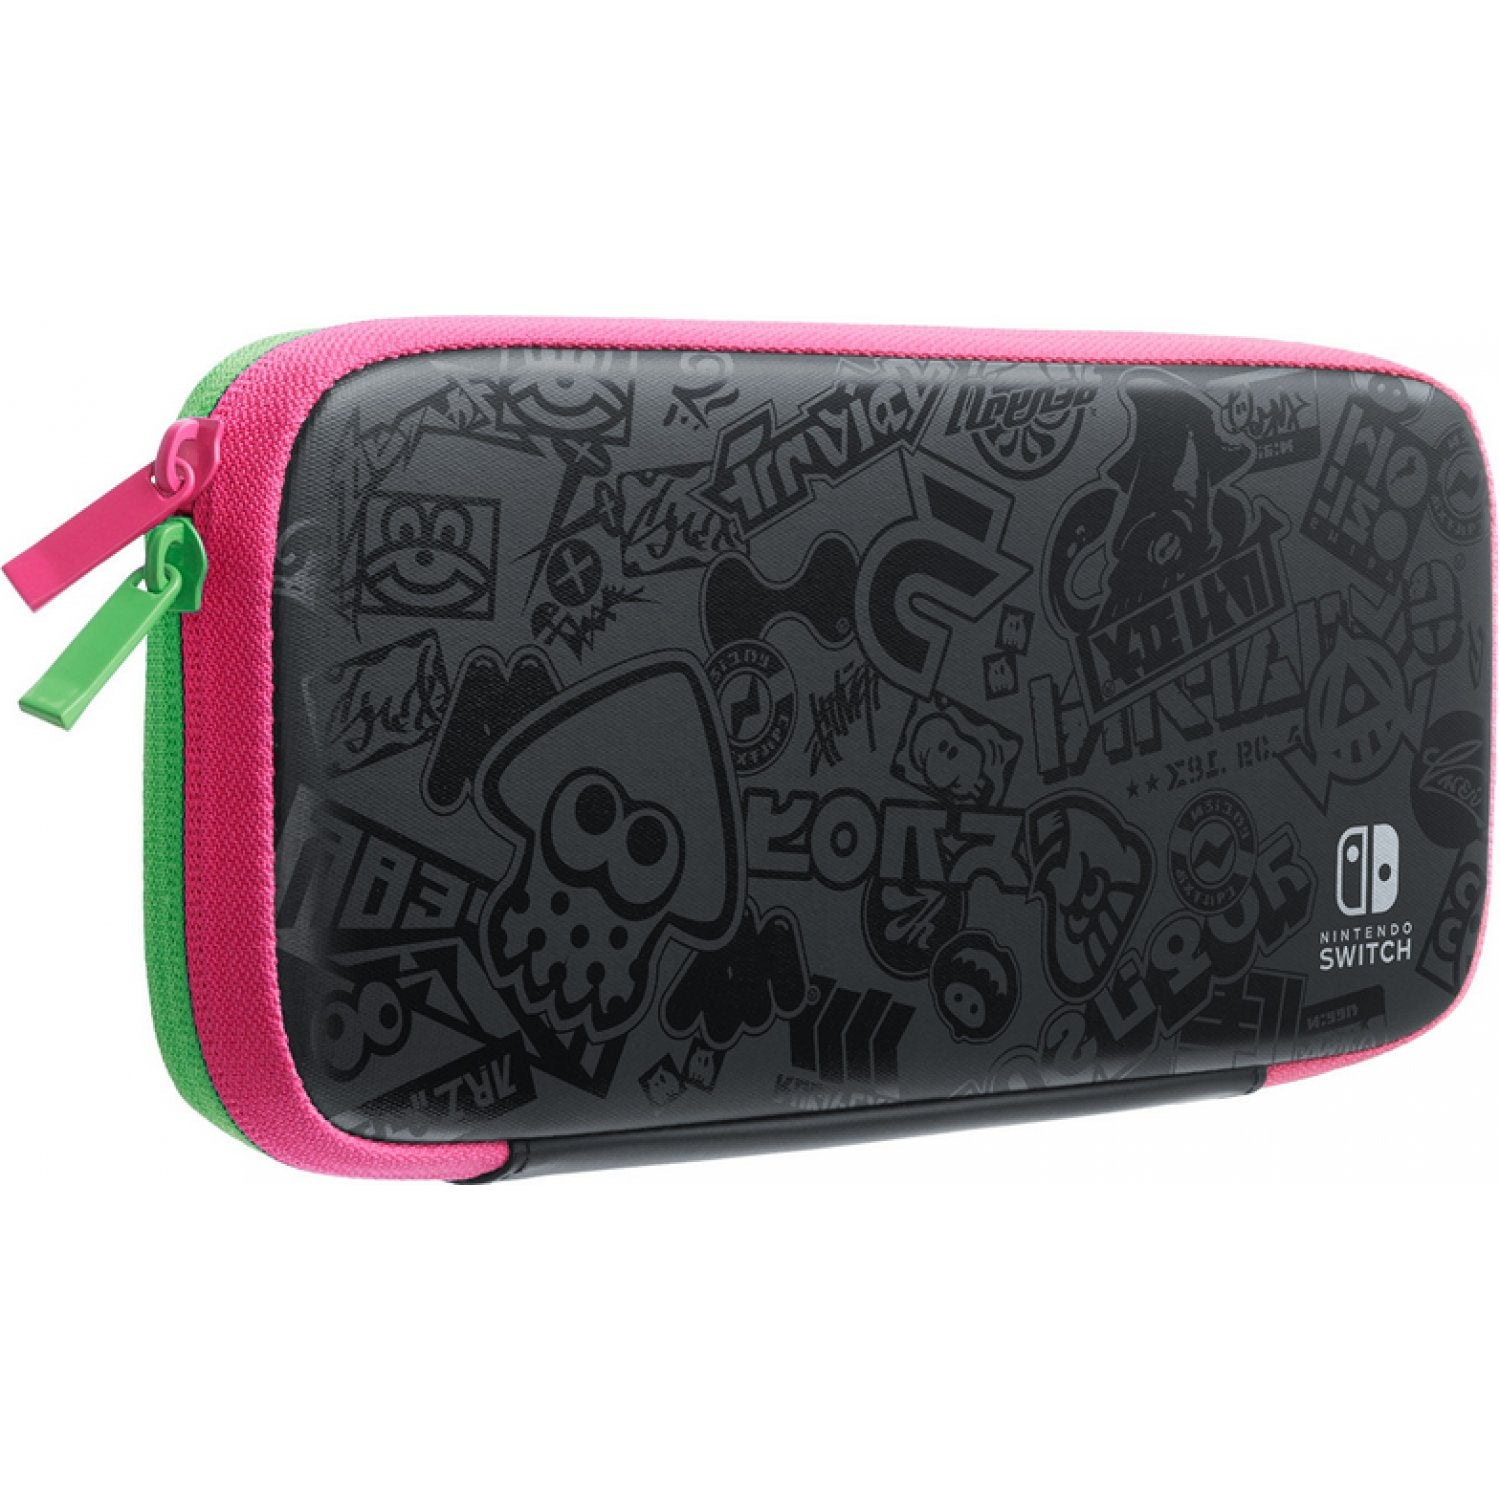 Pre Order Project Cars 2 Page 7 Hori Casing Mika Ps Vita Slim Nintendo Switch Carrying Case With Screen Protector Splatoon Edition